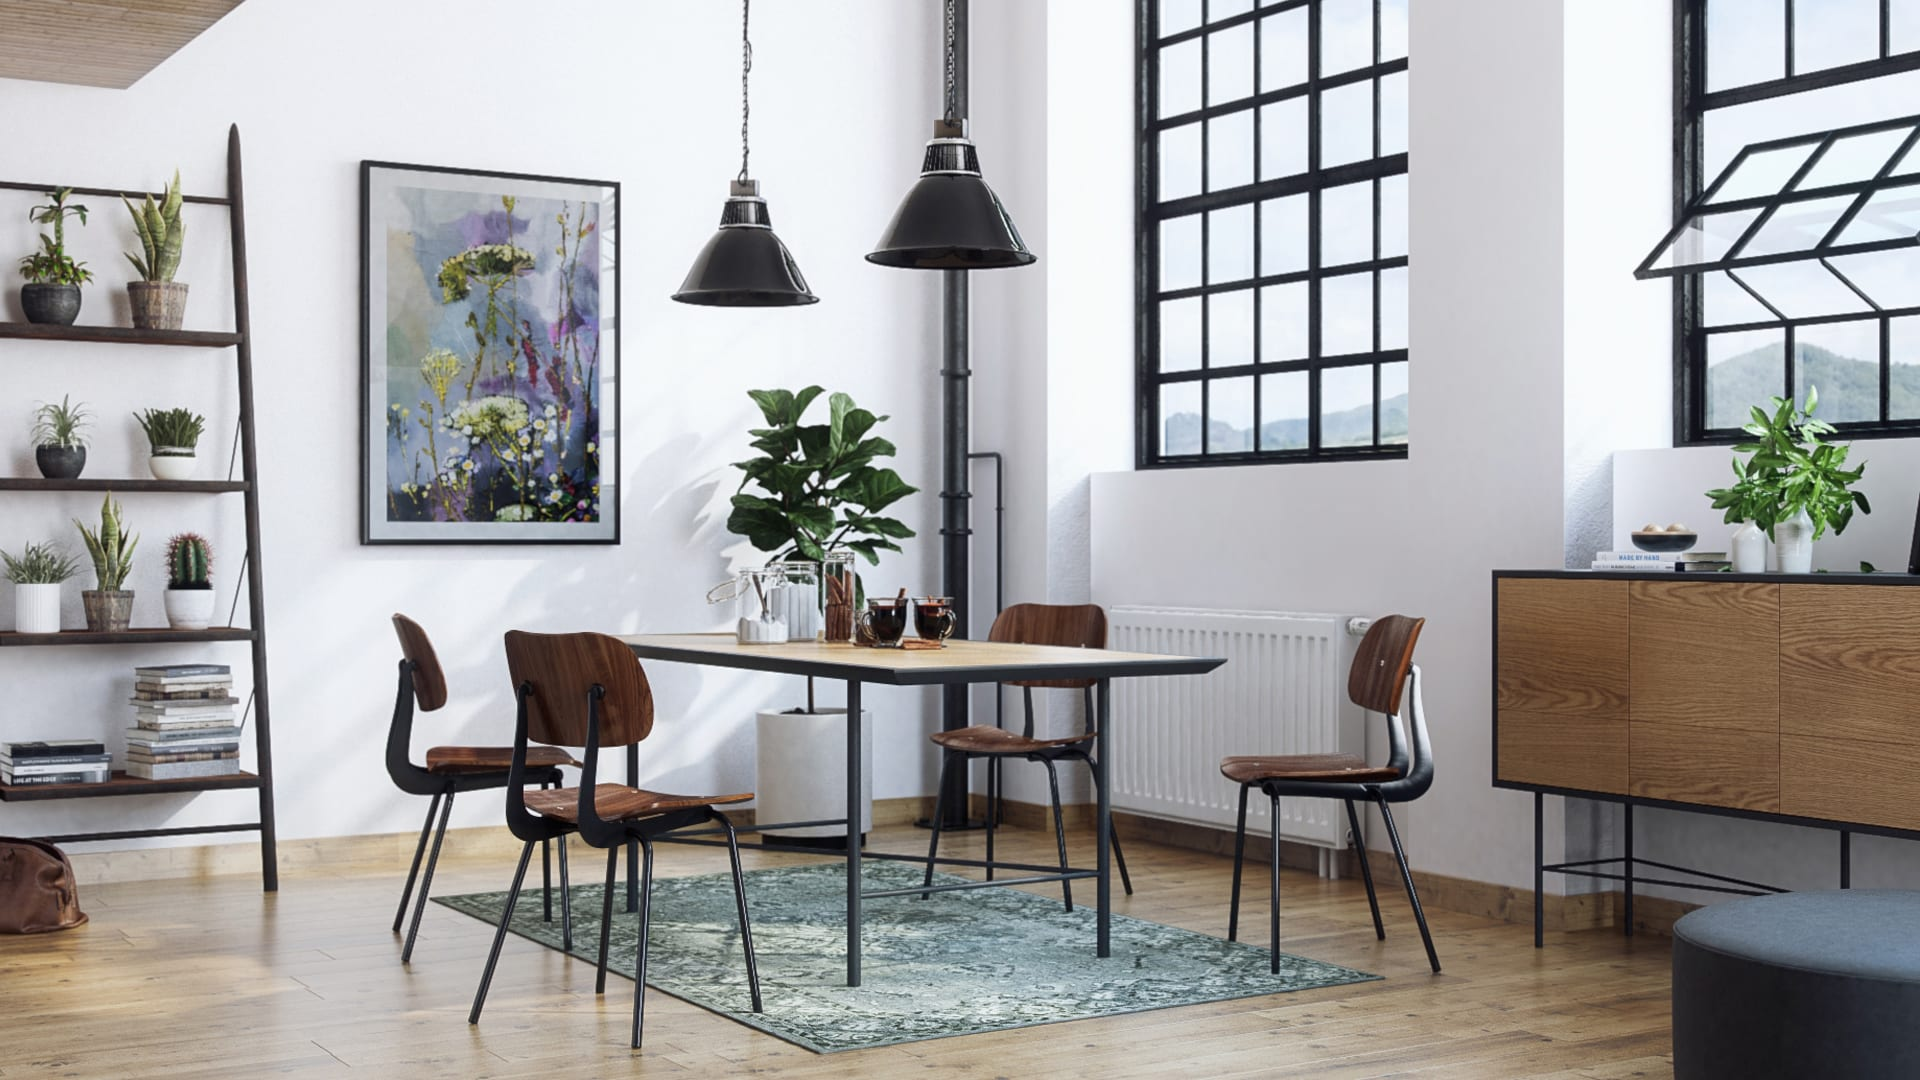 Kensal dining chair prato dining table